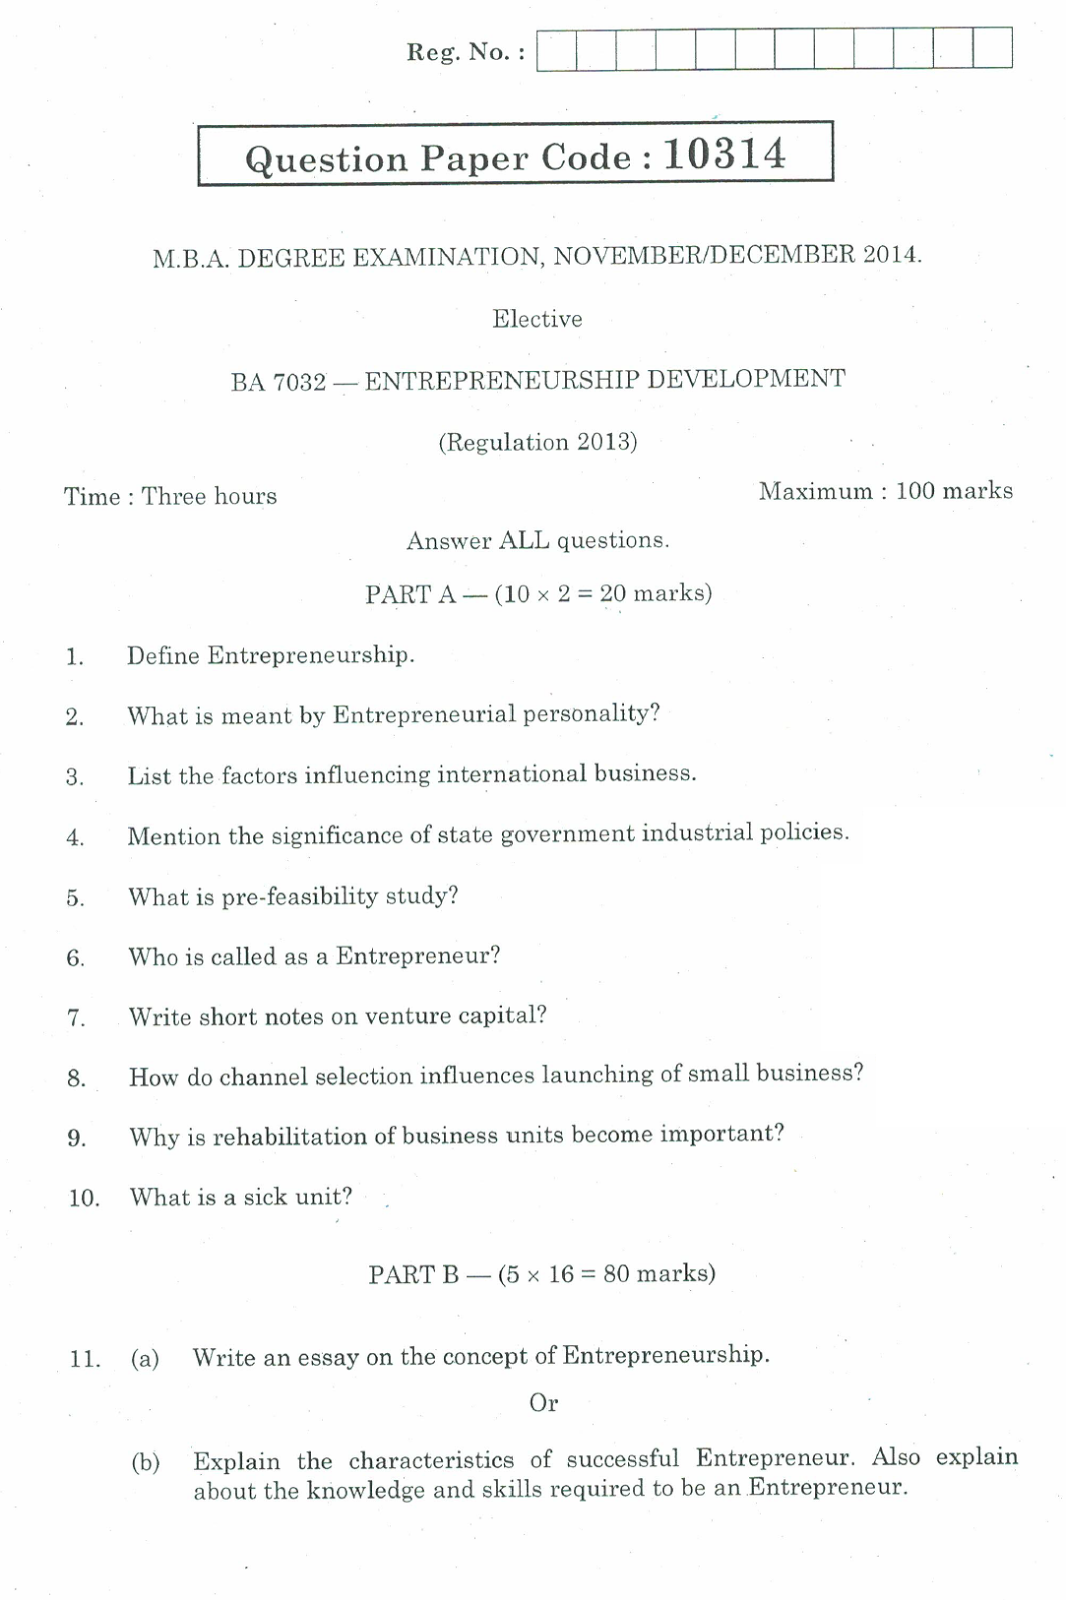 essay questions about entrepreneurship Entrepreneurship final exam questions and answers entrepreneurship final exam questions and  solutions essay topics computer science illuminated 5th edition answer.